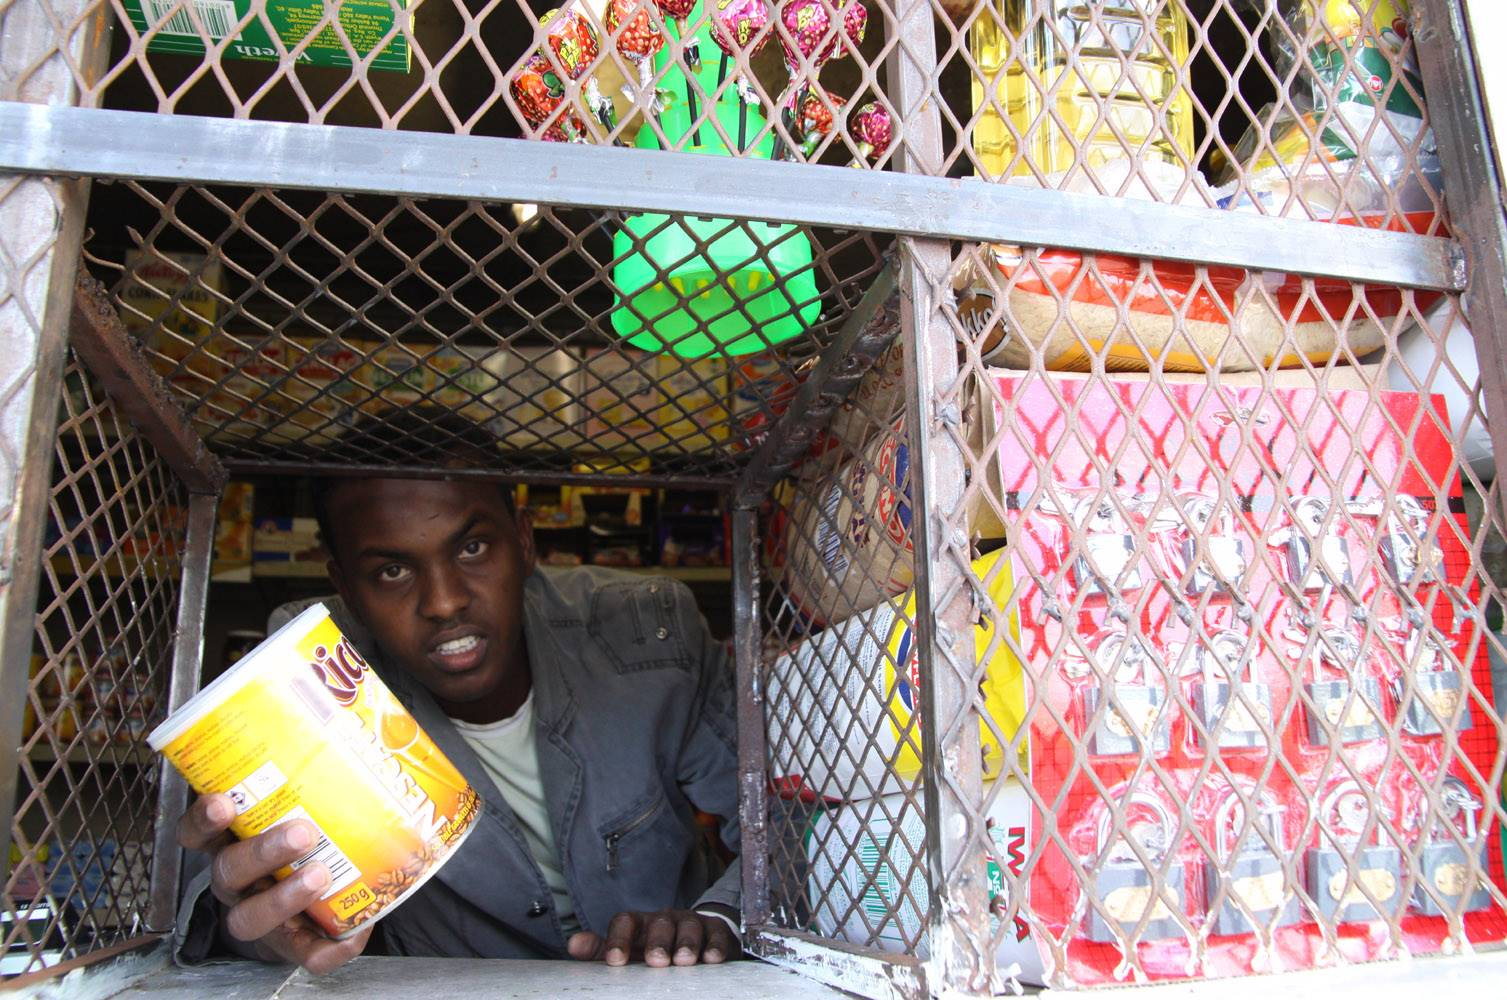 Abdifatah Awes (22) runs a small spaza shop in Gugulethu, Cape Town. SA's informal business sector can collaborate with the formal sector to create an industry that can thrive once again. Photo: Waldimar Pelser